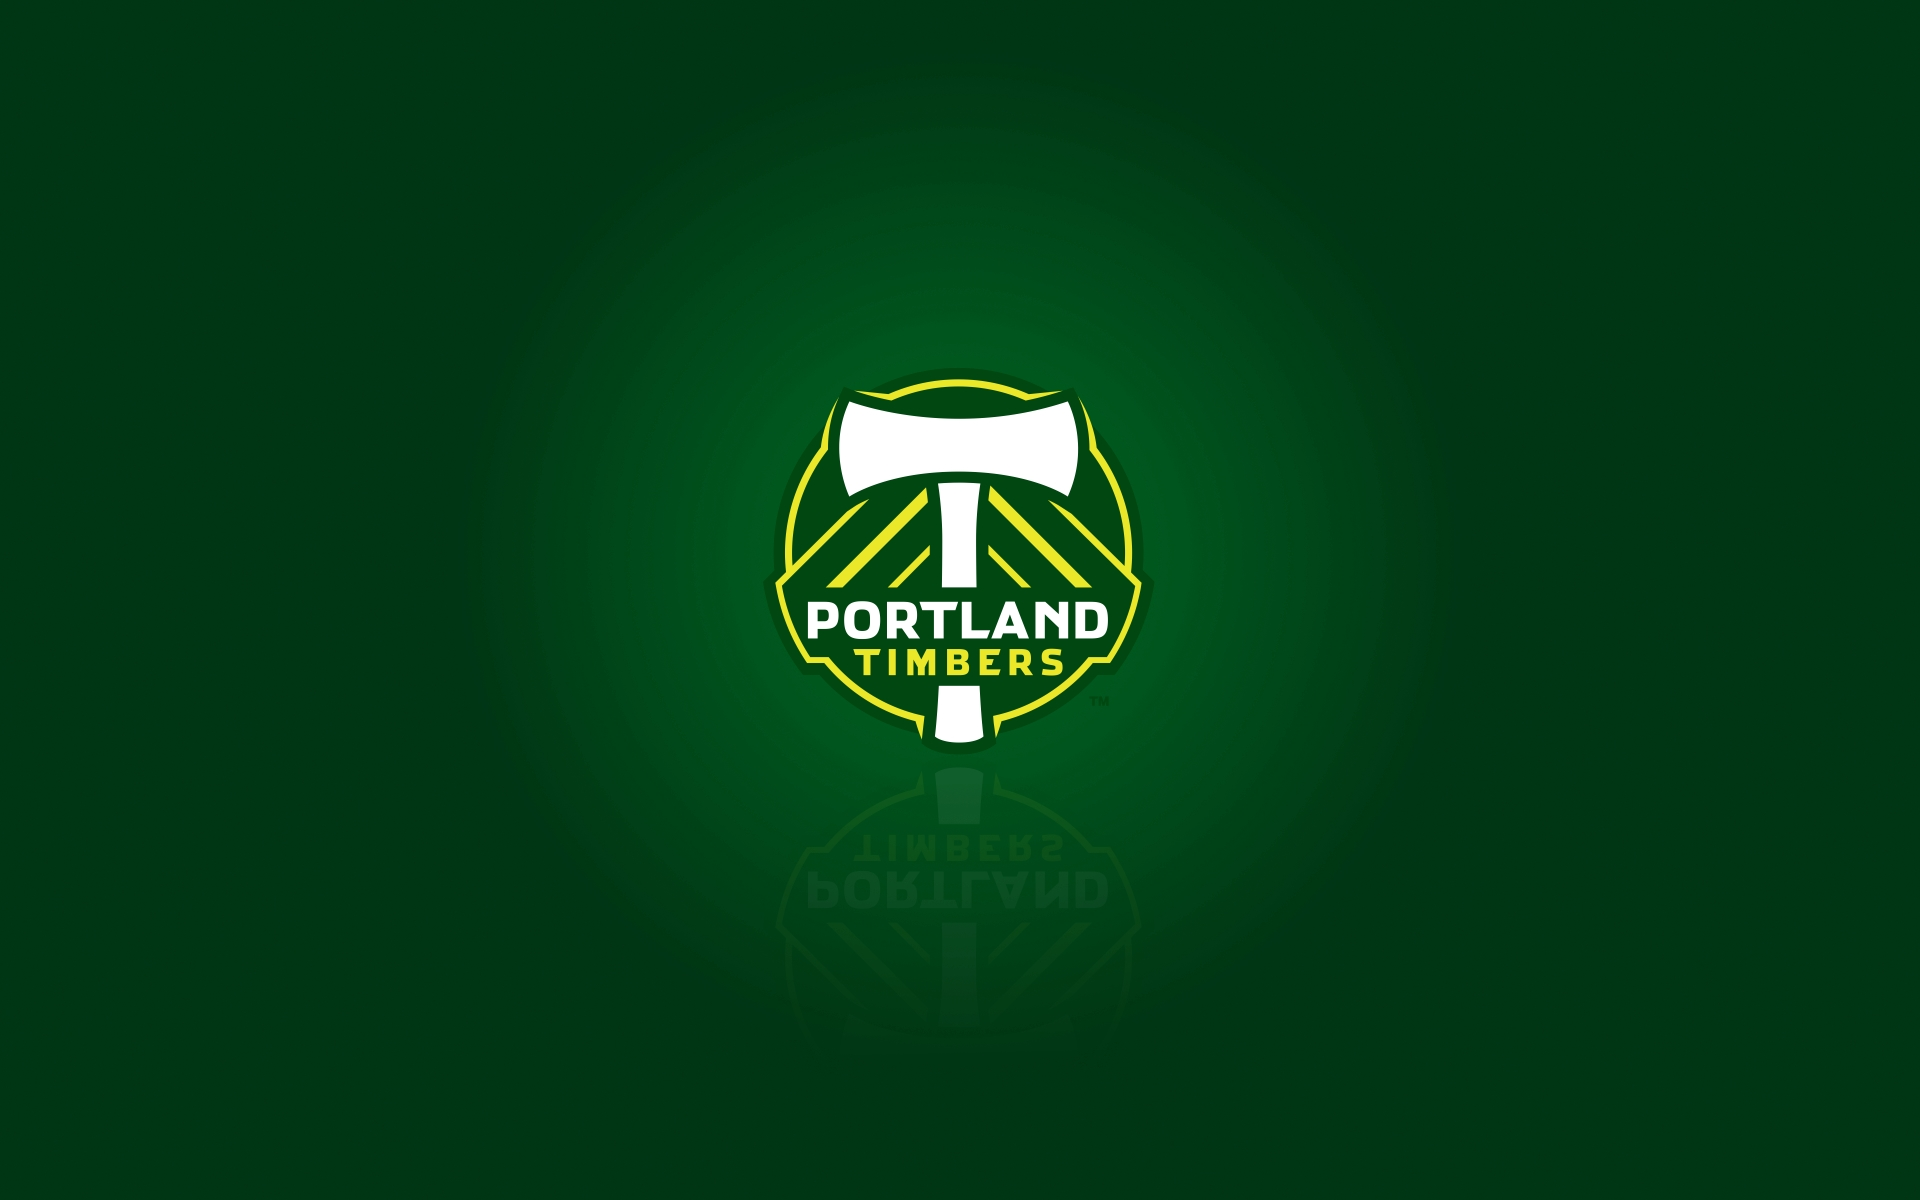 portland timbers logos download basketball logo creator free basketball logo design ideas